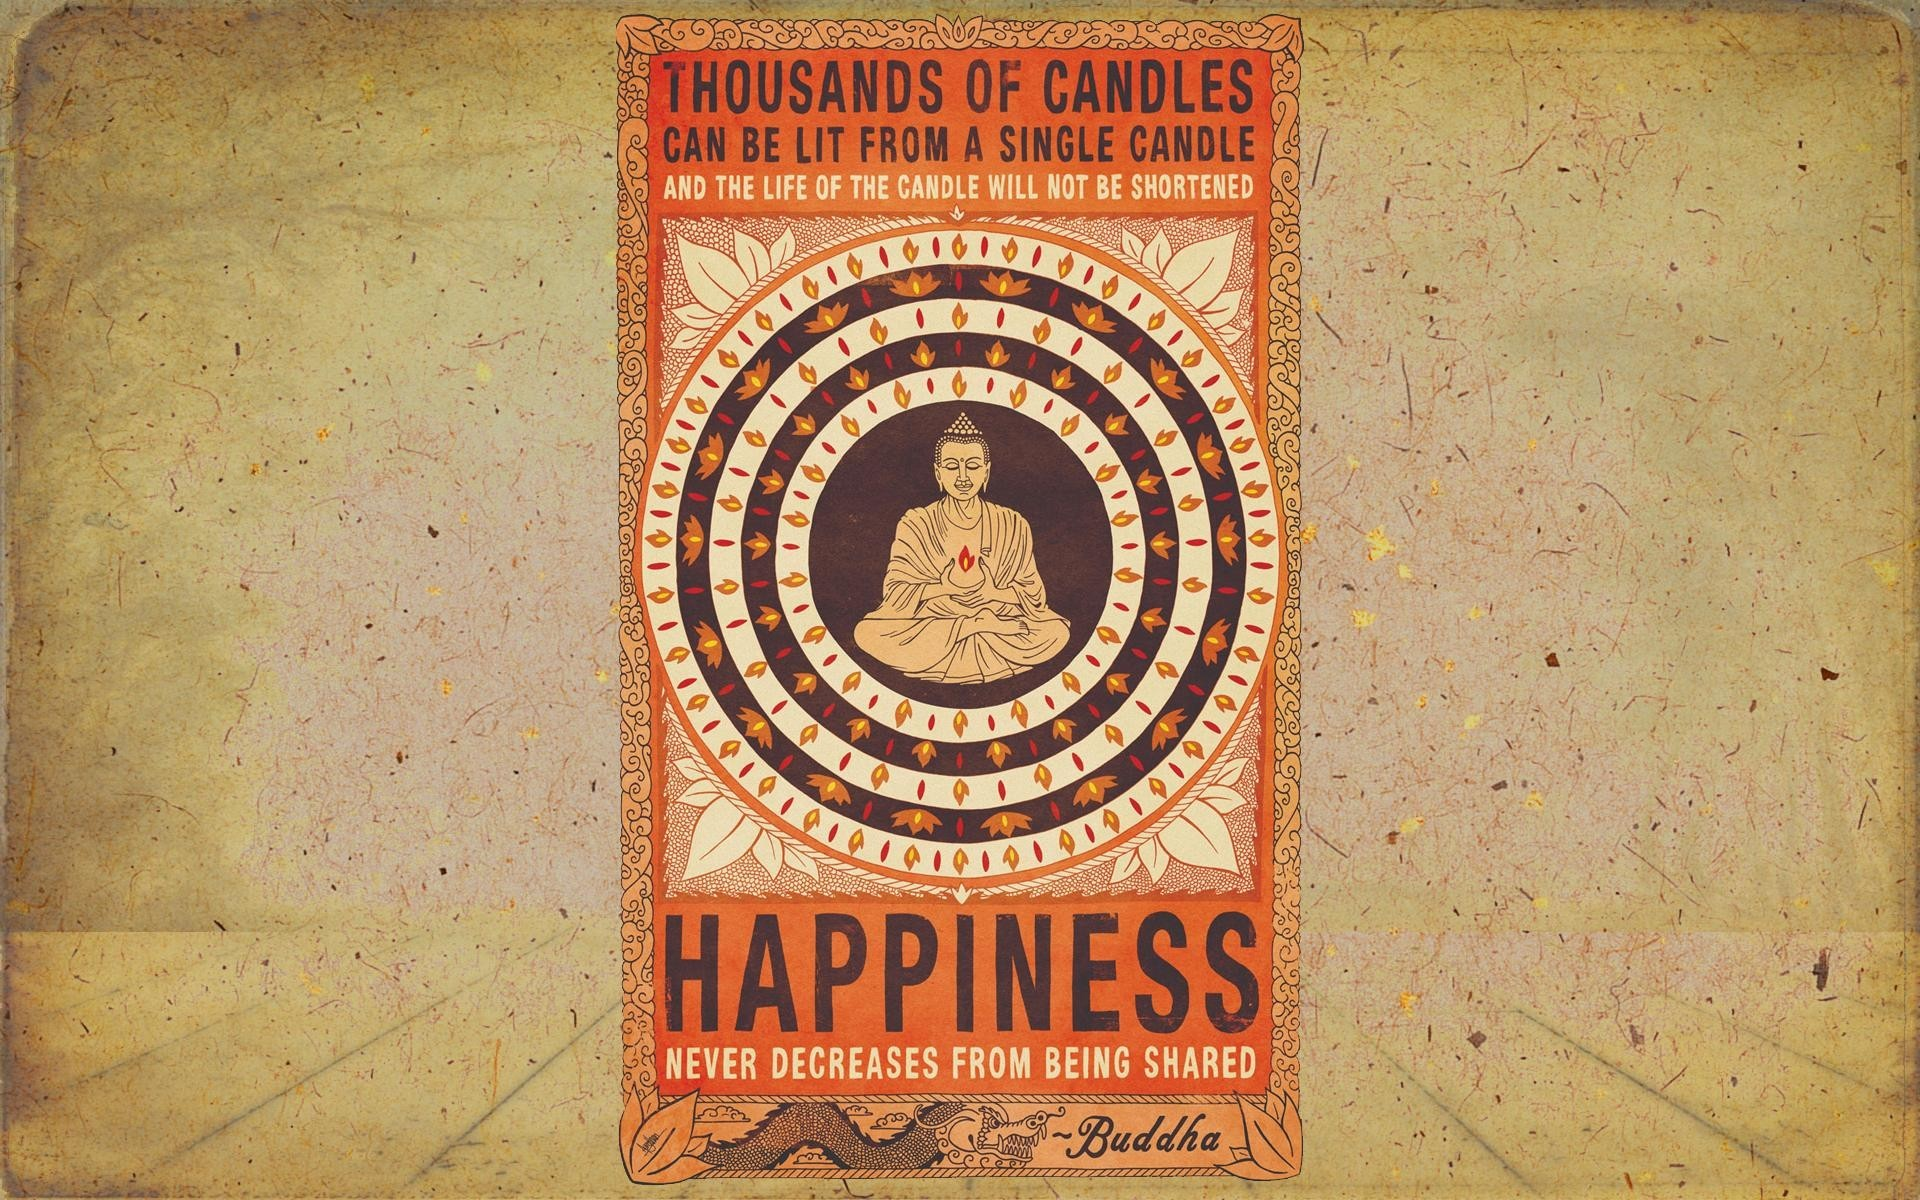 Res: 1920x1200, Religion Buddha happiness candles wallpaper |  | 206428 |  WallpaperUP